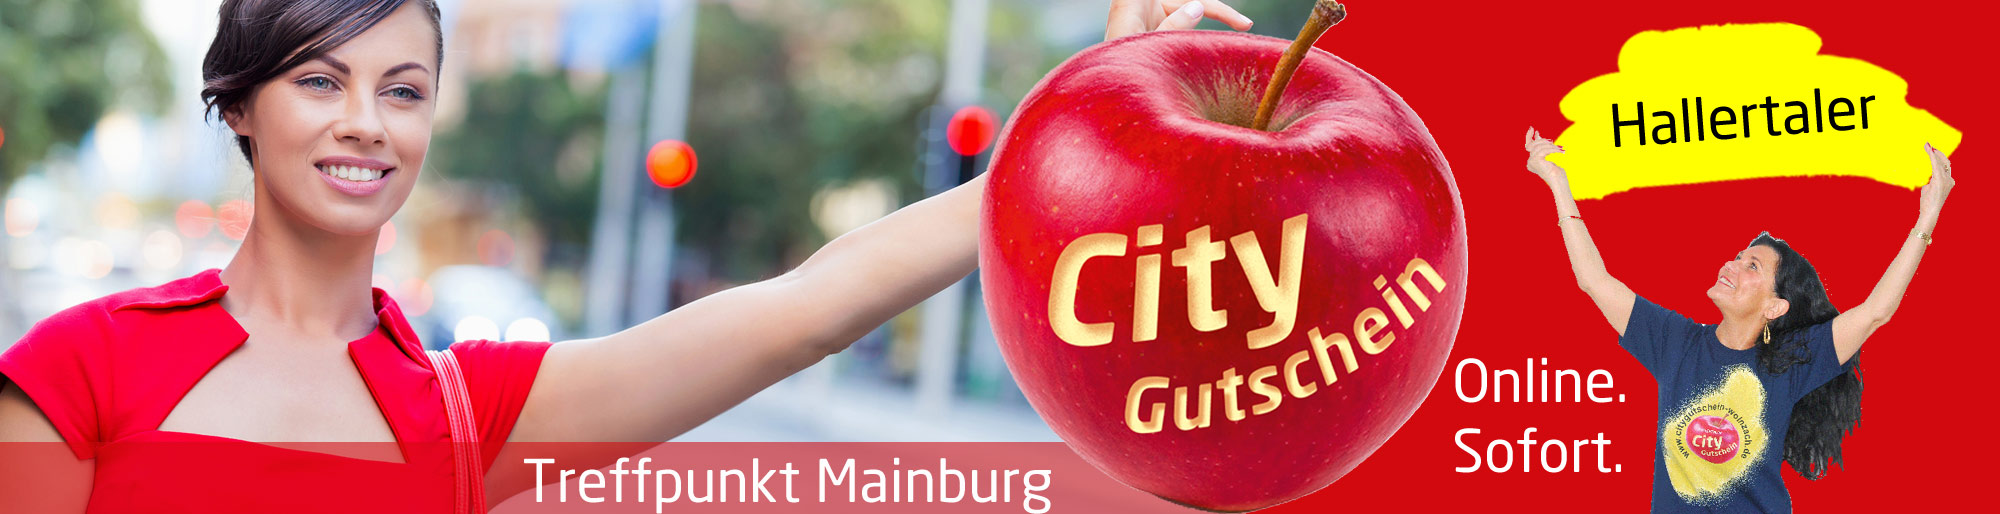 City Gutschein Mainburg